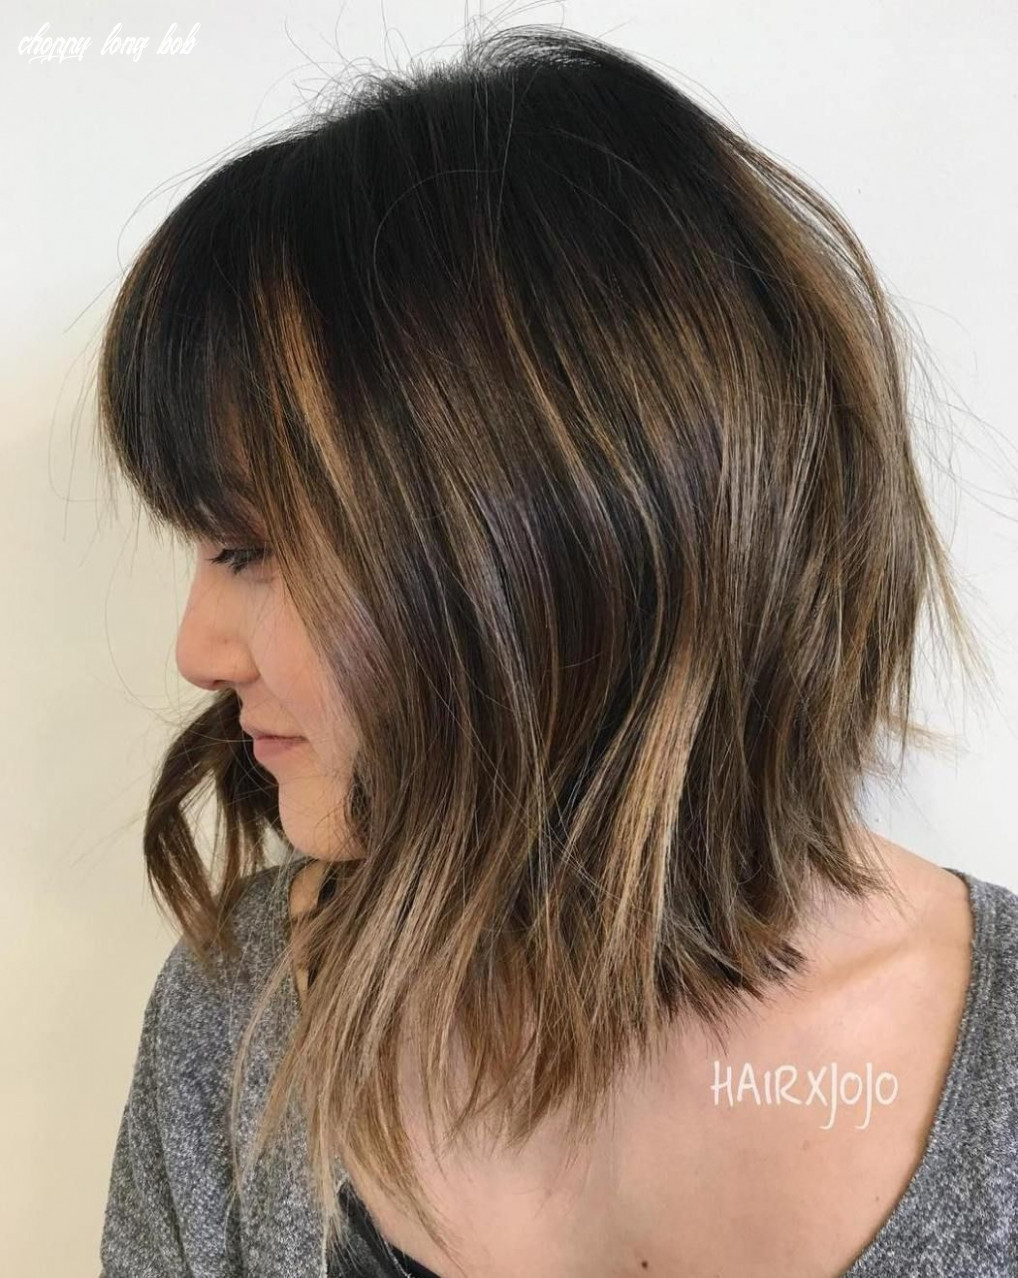 12 long choppy bob hairstyles for brunettes and blondes   choppy